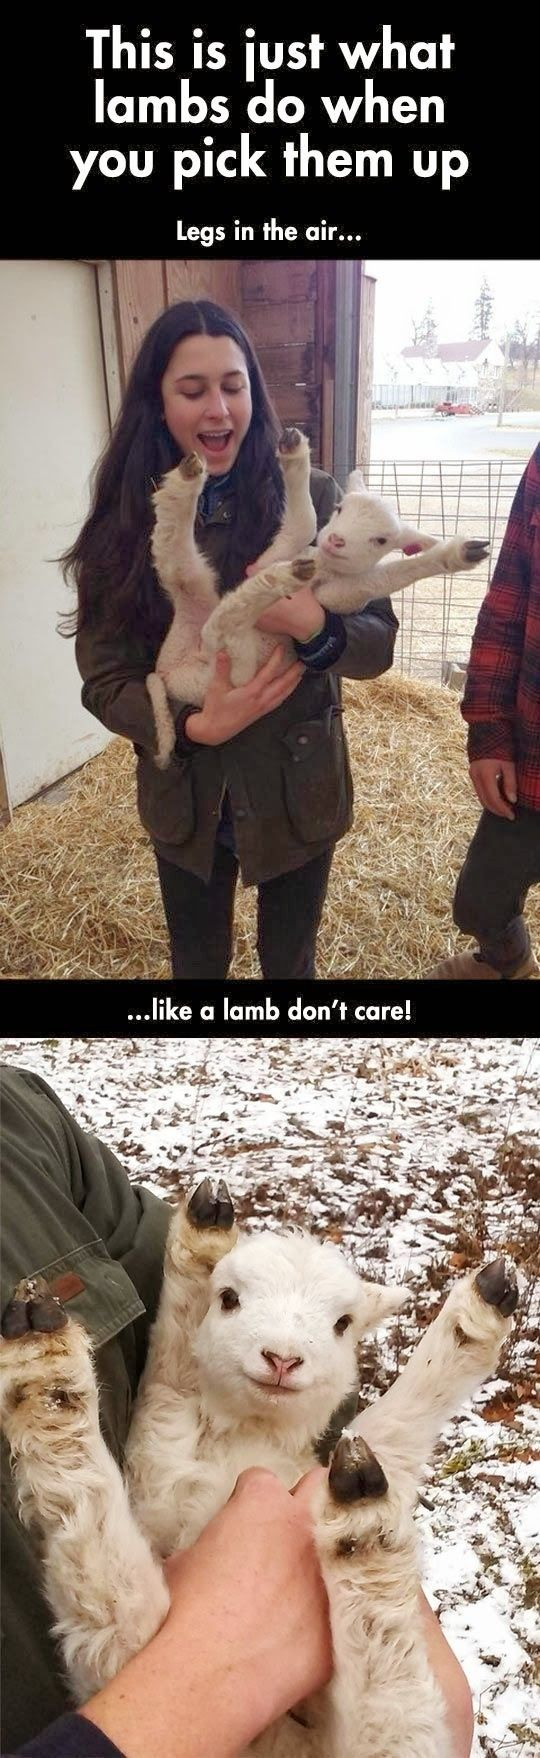 I need to pick up a lamb now.